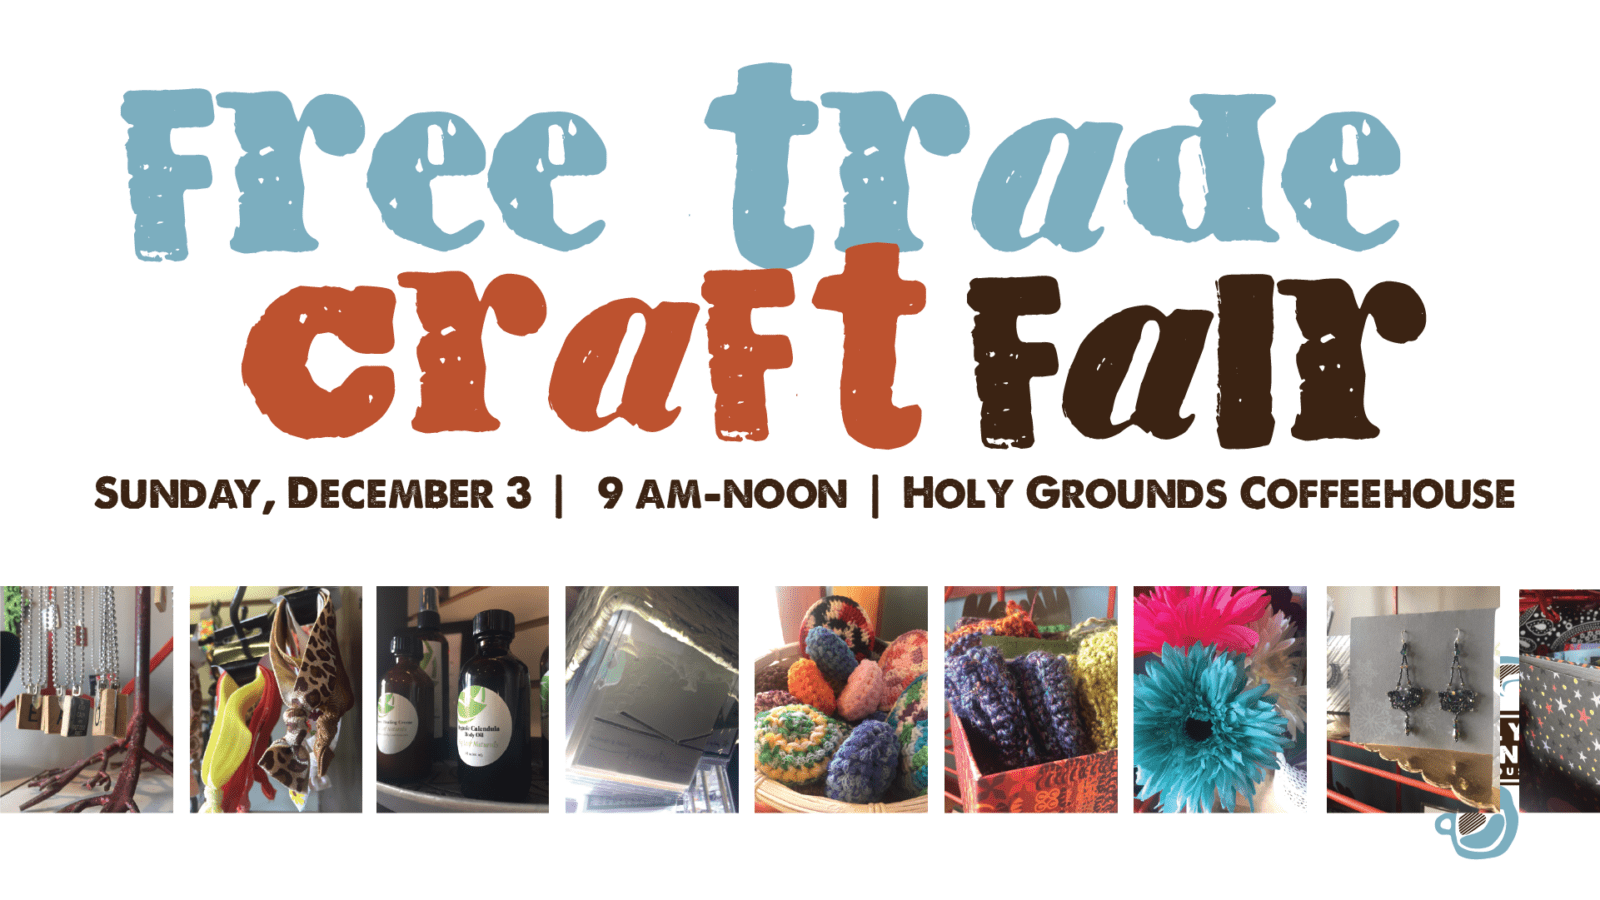 Church Craft Fair